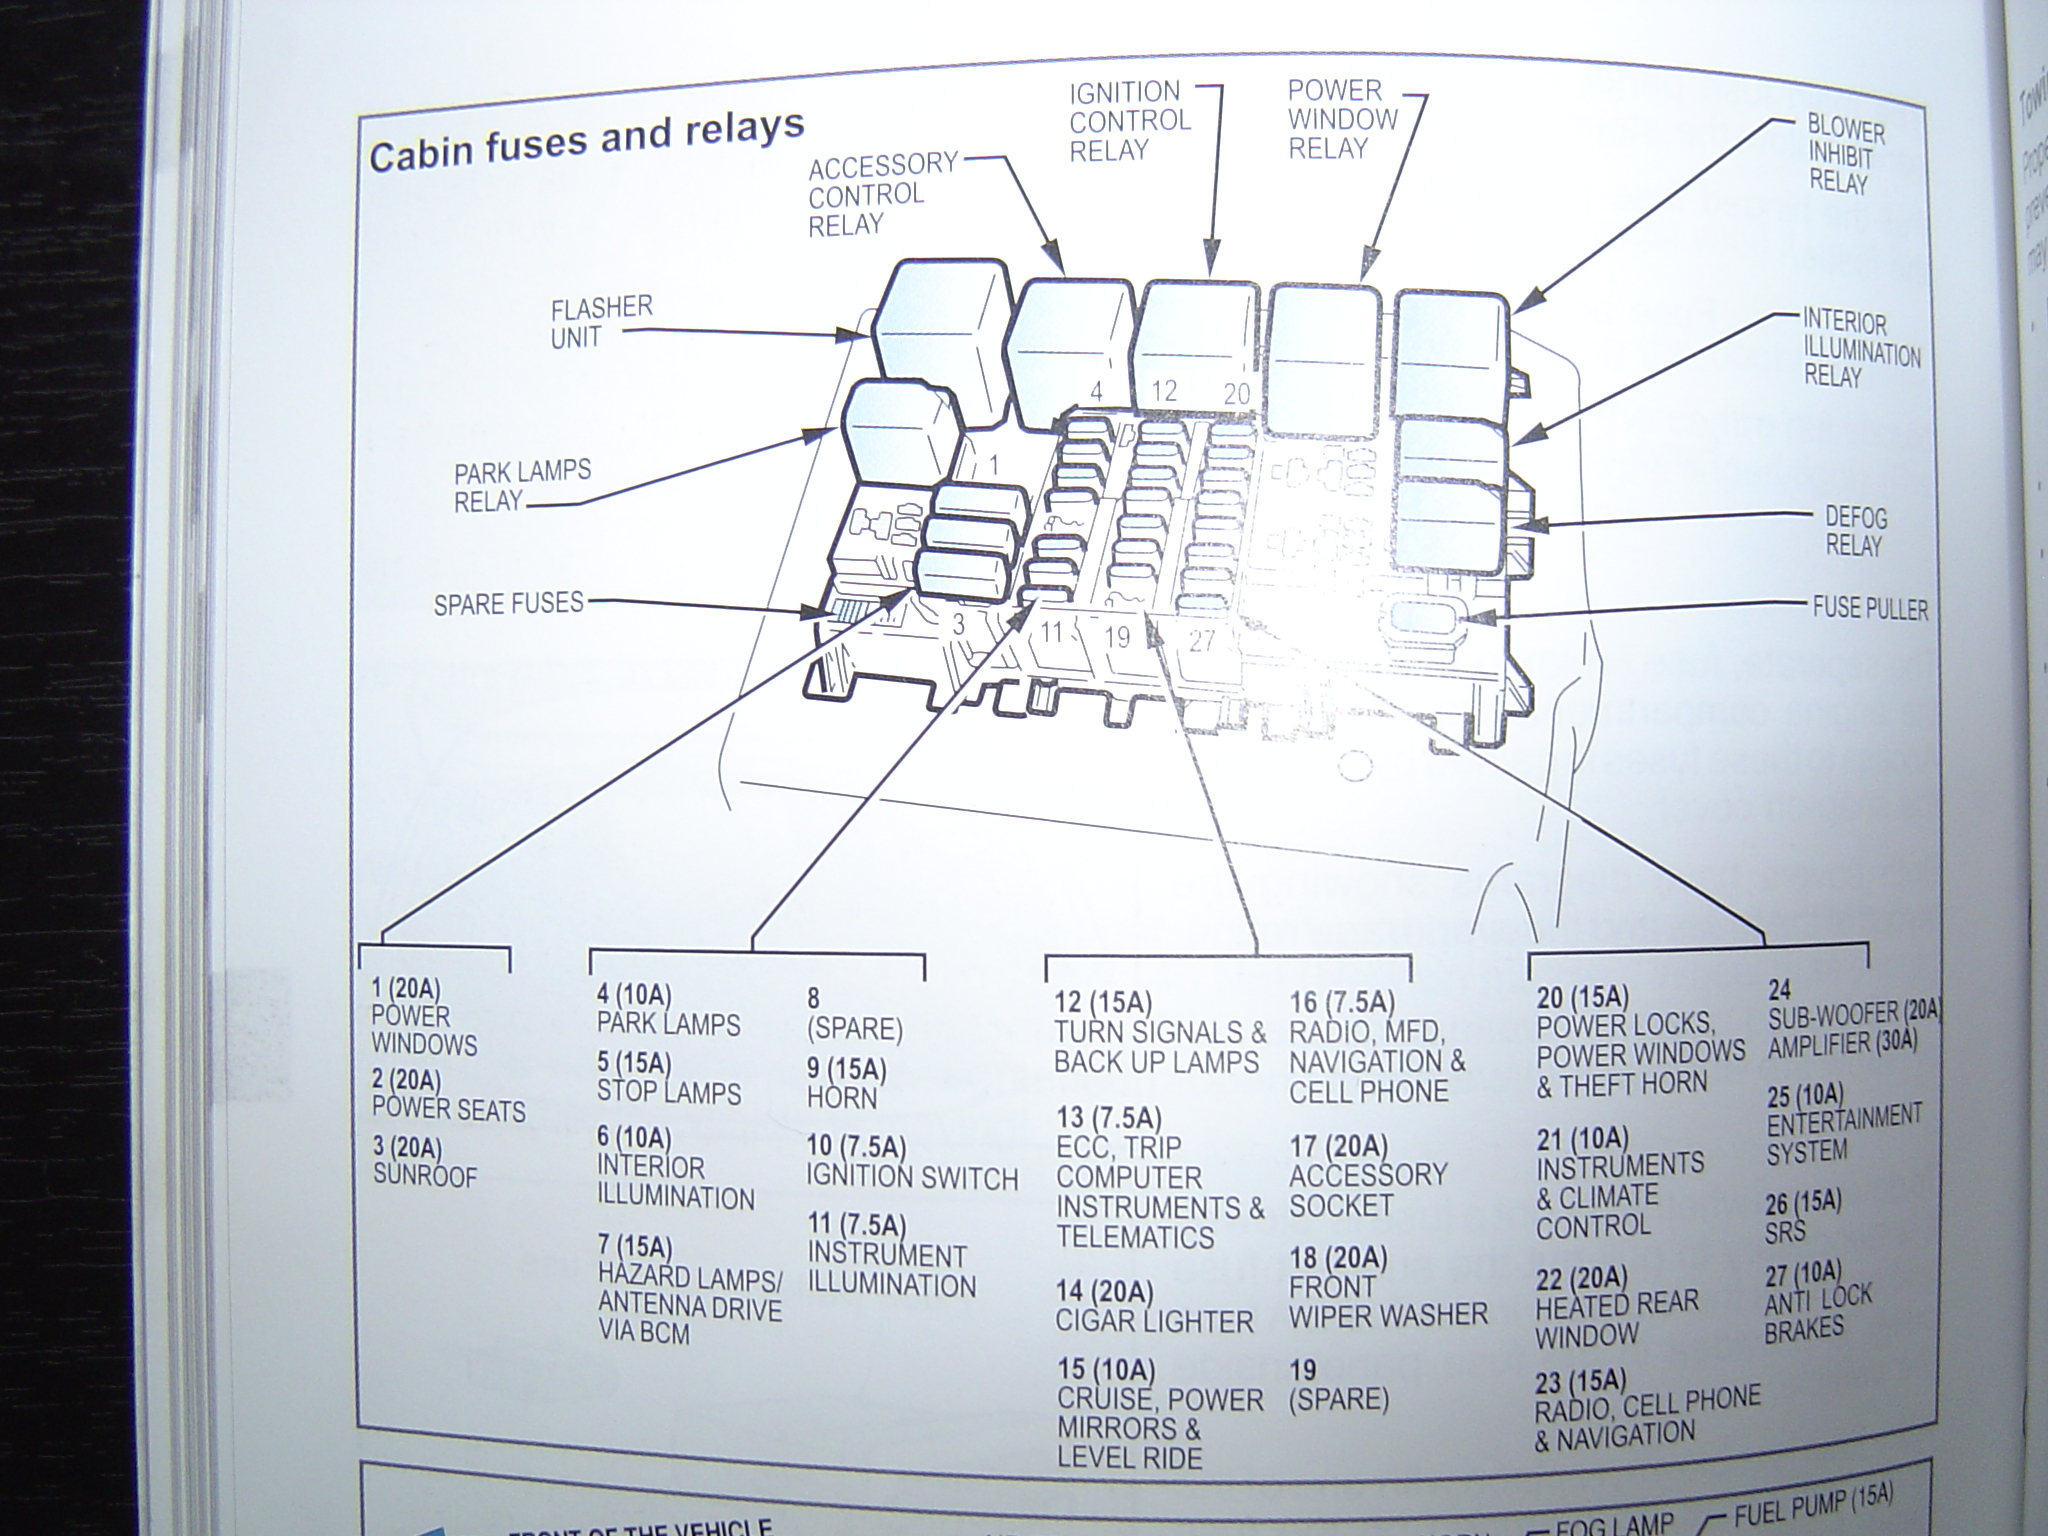 VY_CABIN_FUSEBOX fuse box diagram ba falcon fuse wiring diagrams instruction ba falcon fuse box layout at n-0.co